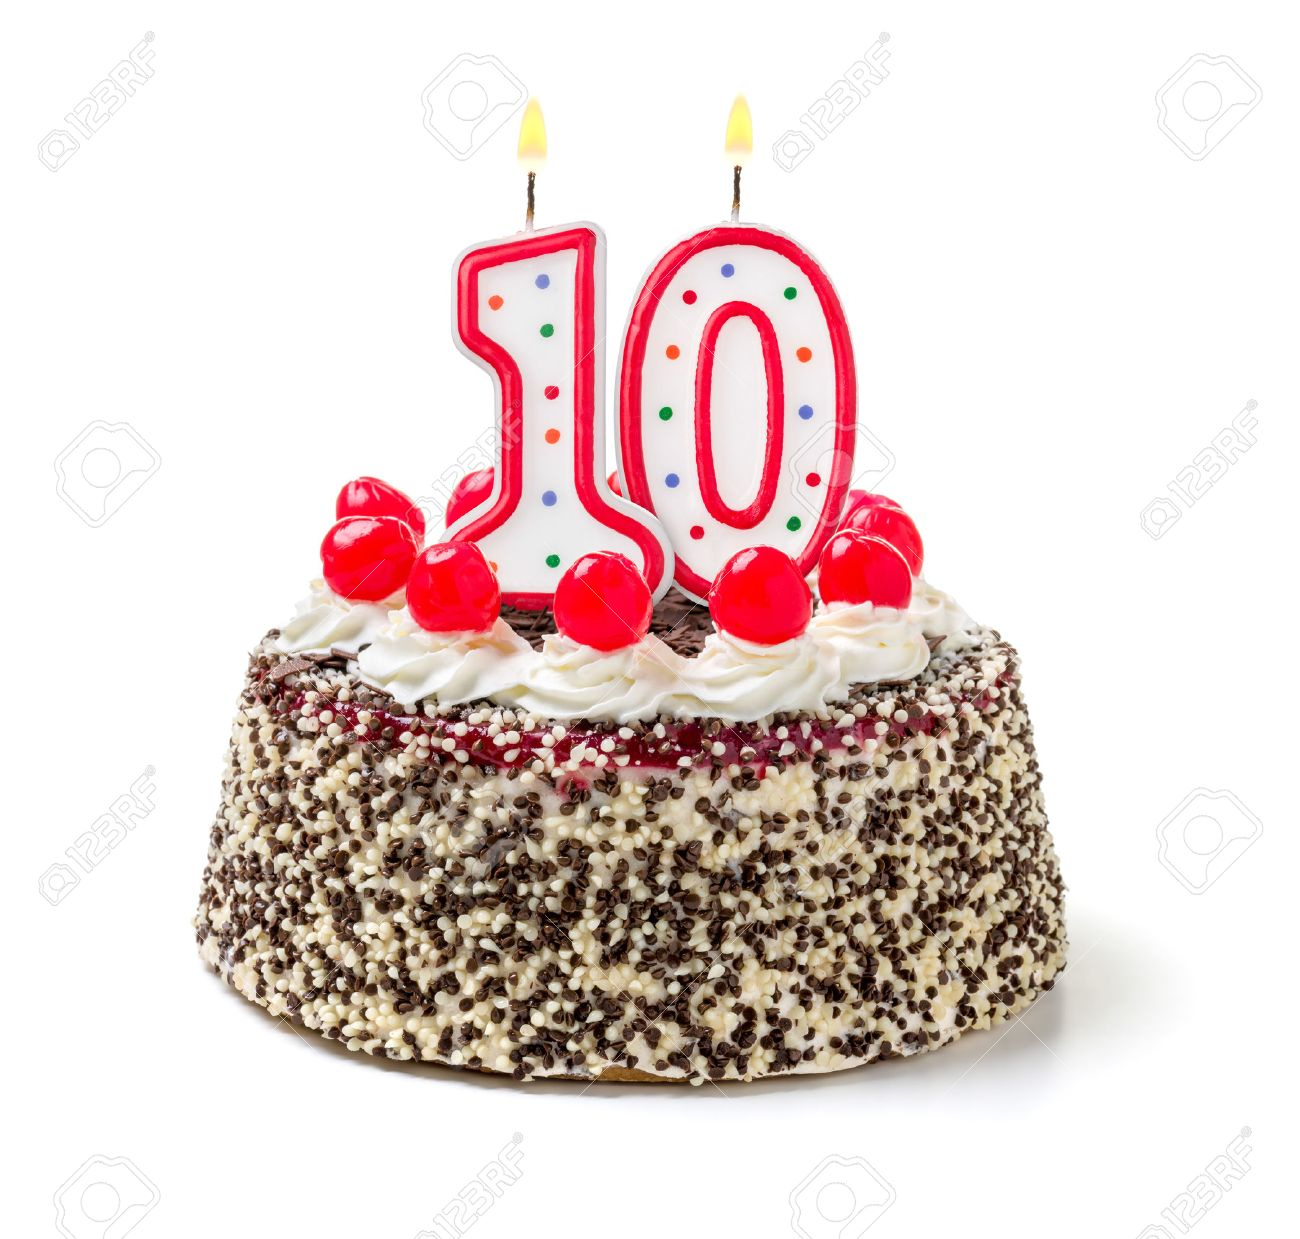 Peachy Birthday Cake With Burning Candle Number 10 Stock Photo Picture Funny Birthday Cards Online Elaedamsfinfo